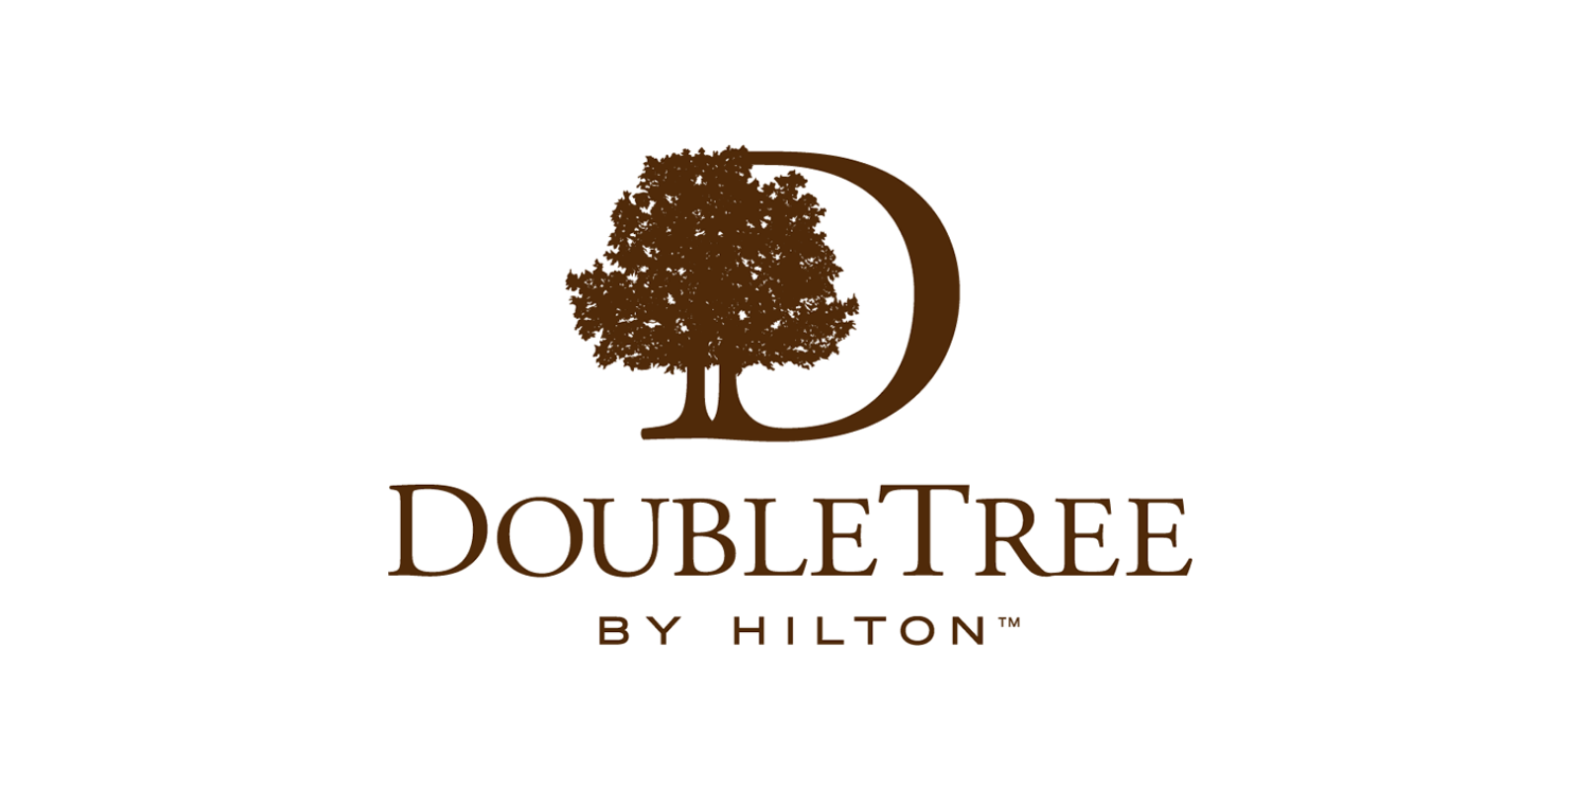 DoubleTree by Hilton LIC (Opening 2022)